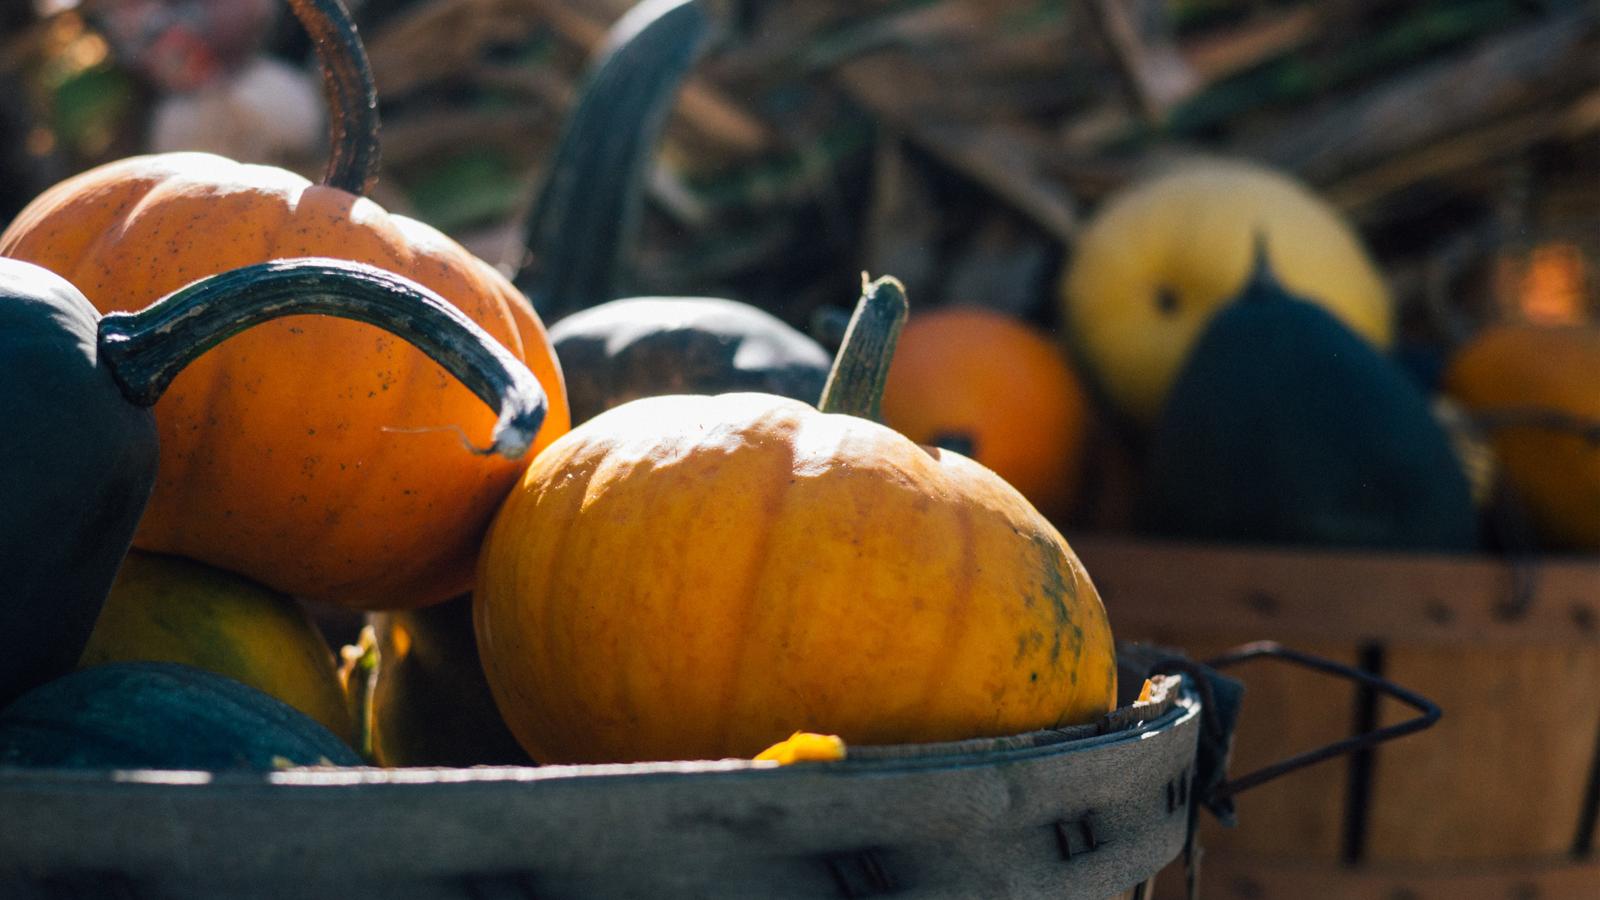 3 outstanding recipes for pumpkin that will inspire you to cook